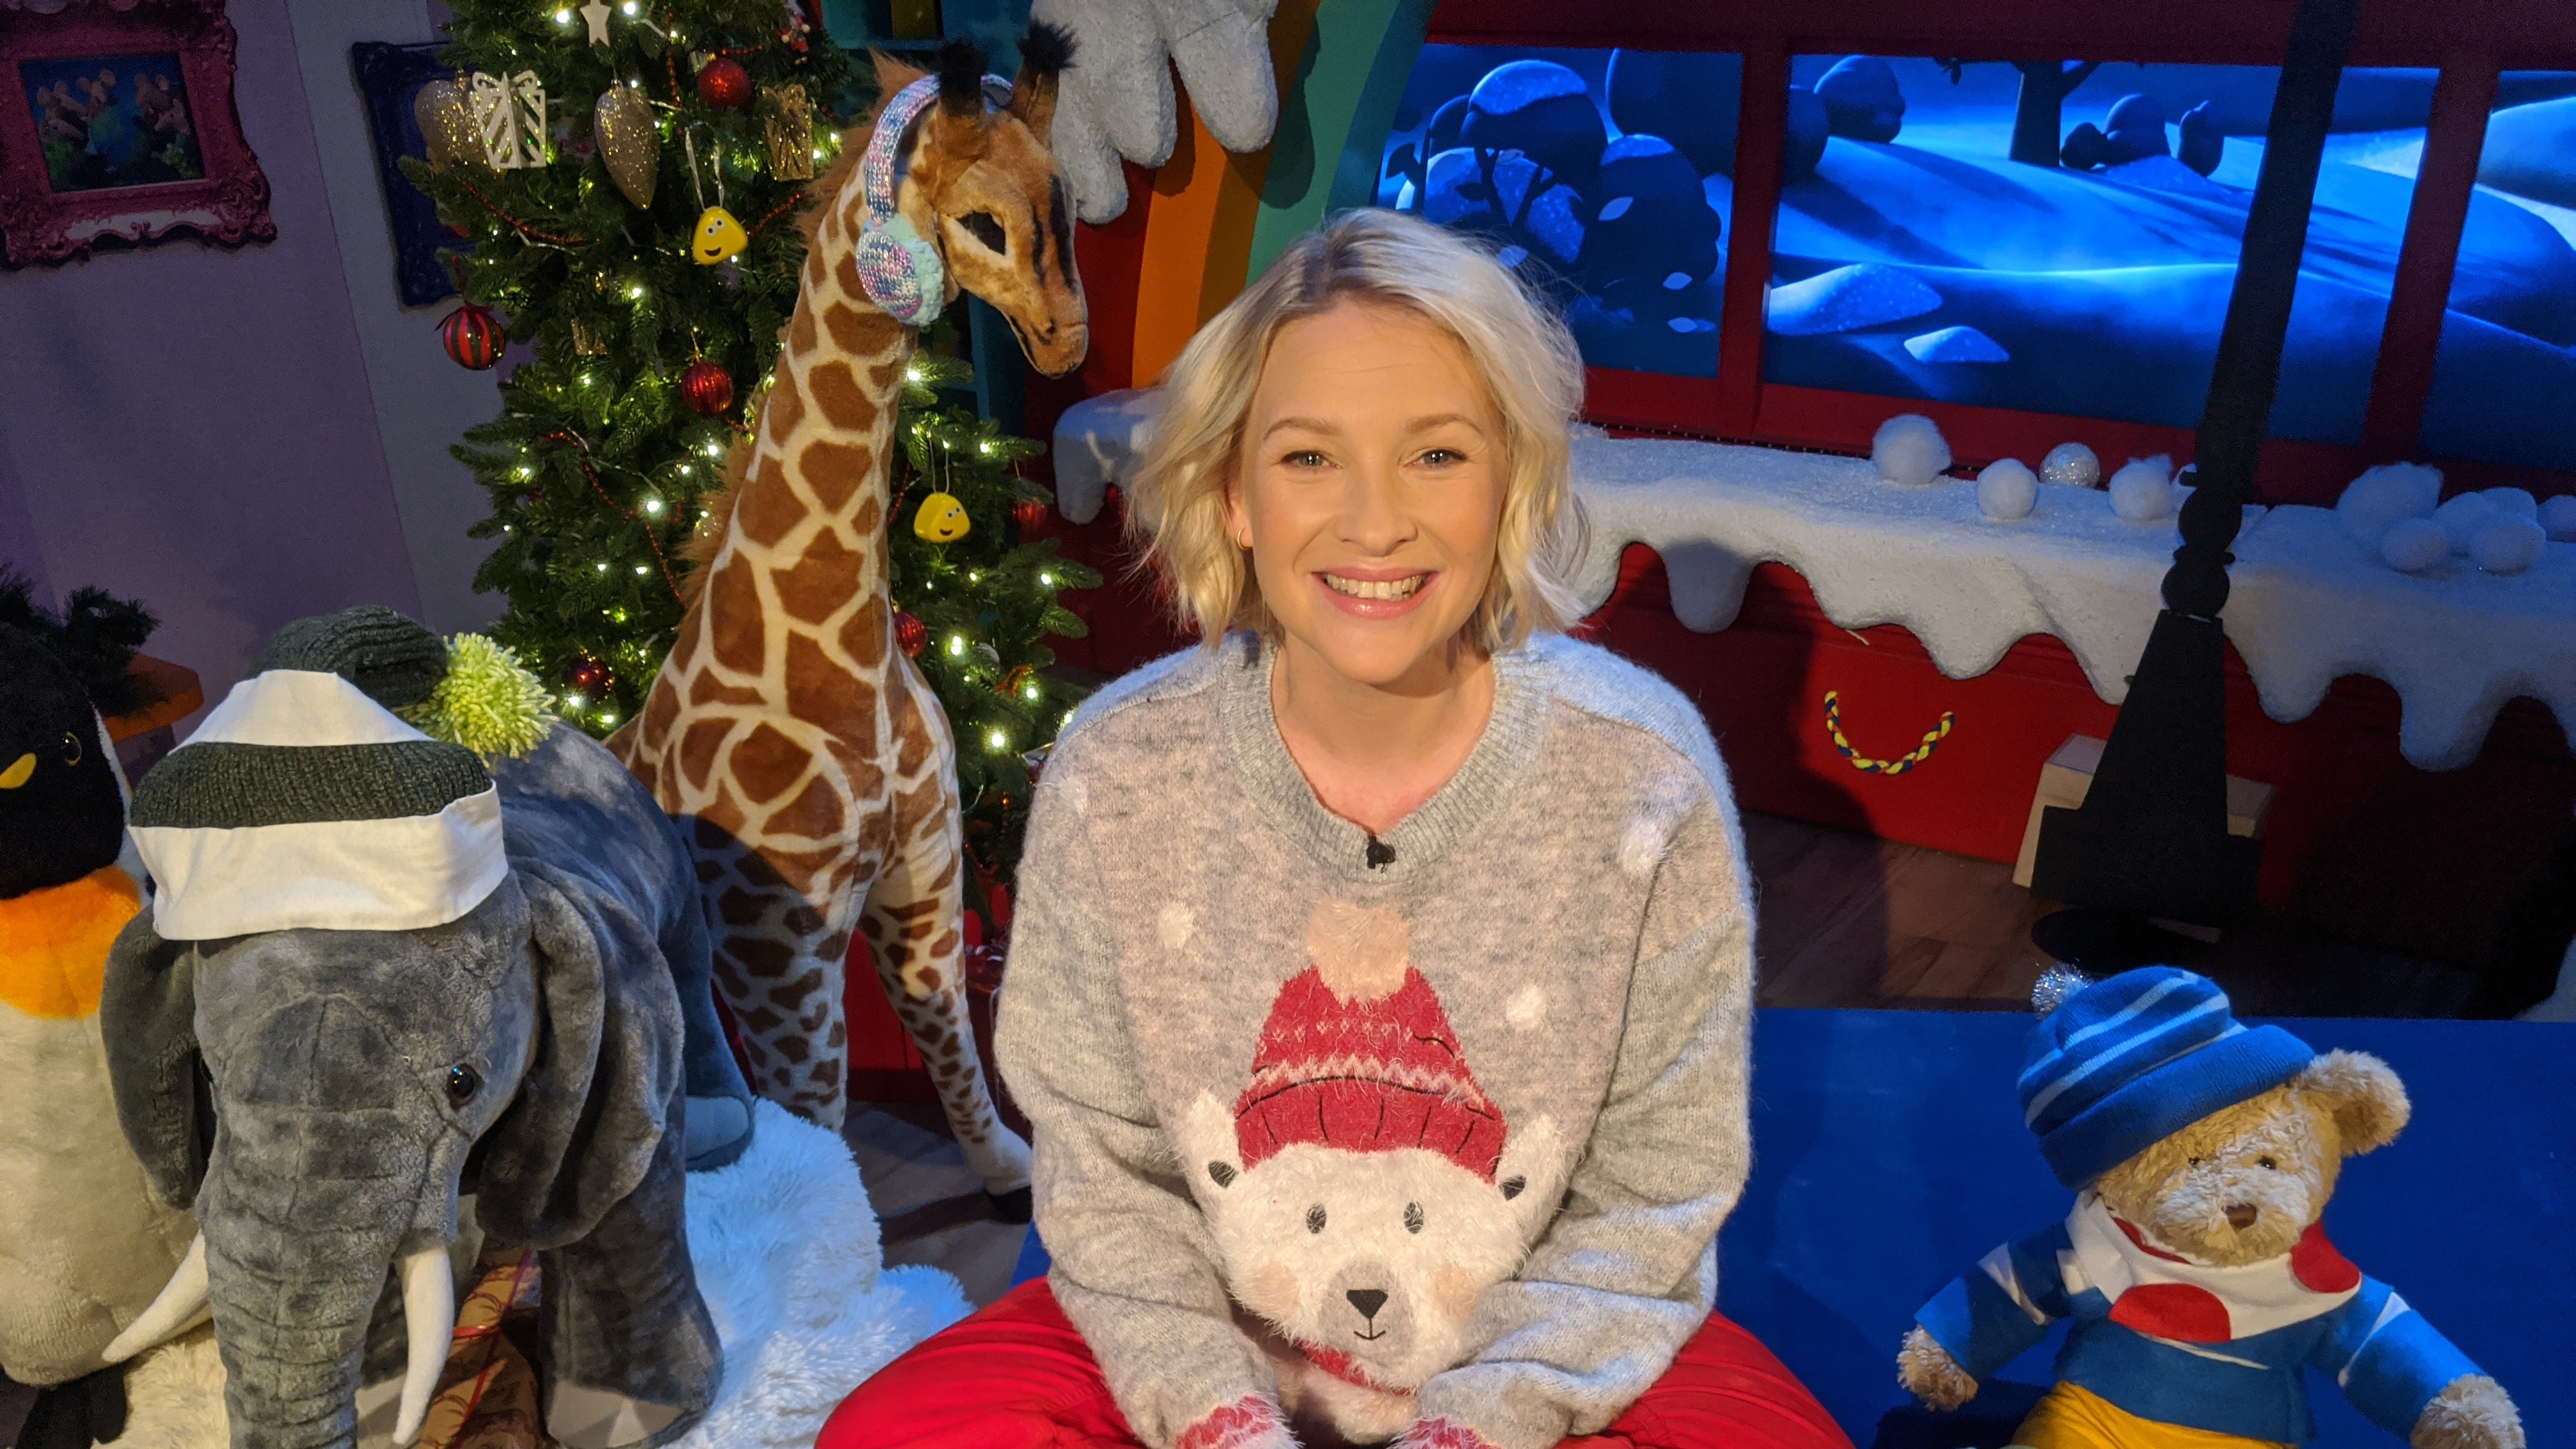 Alison Wheeler Hot joanna page to appear on cbeebies on same day gavin and